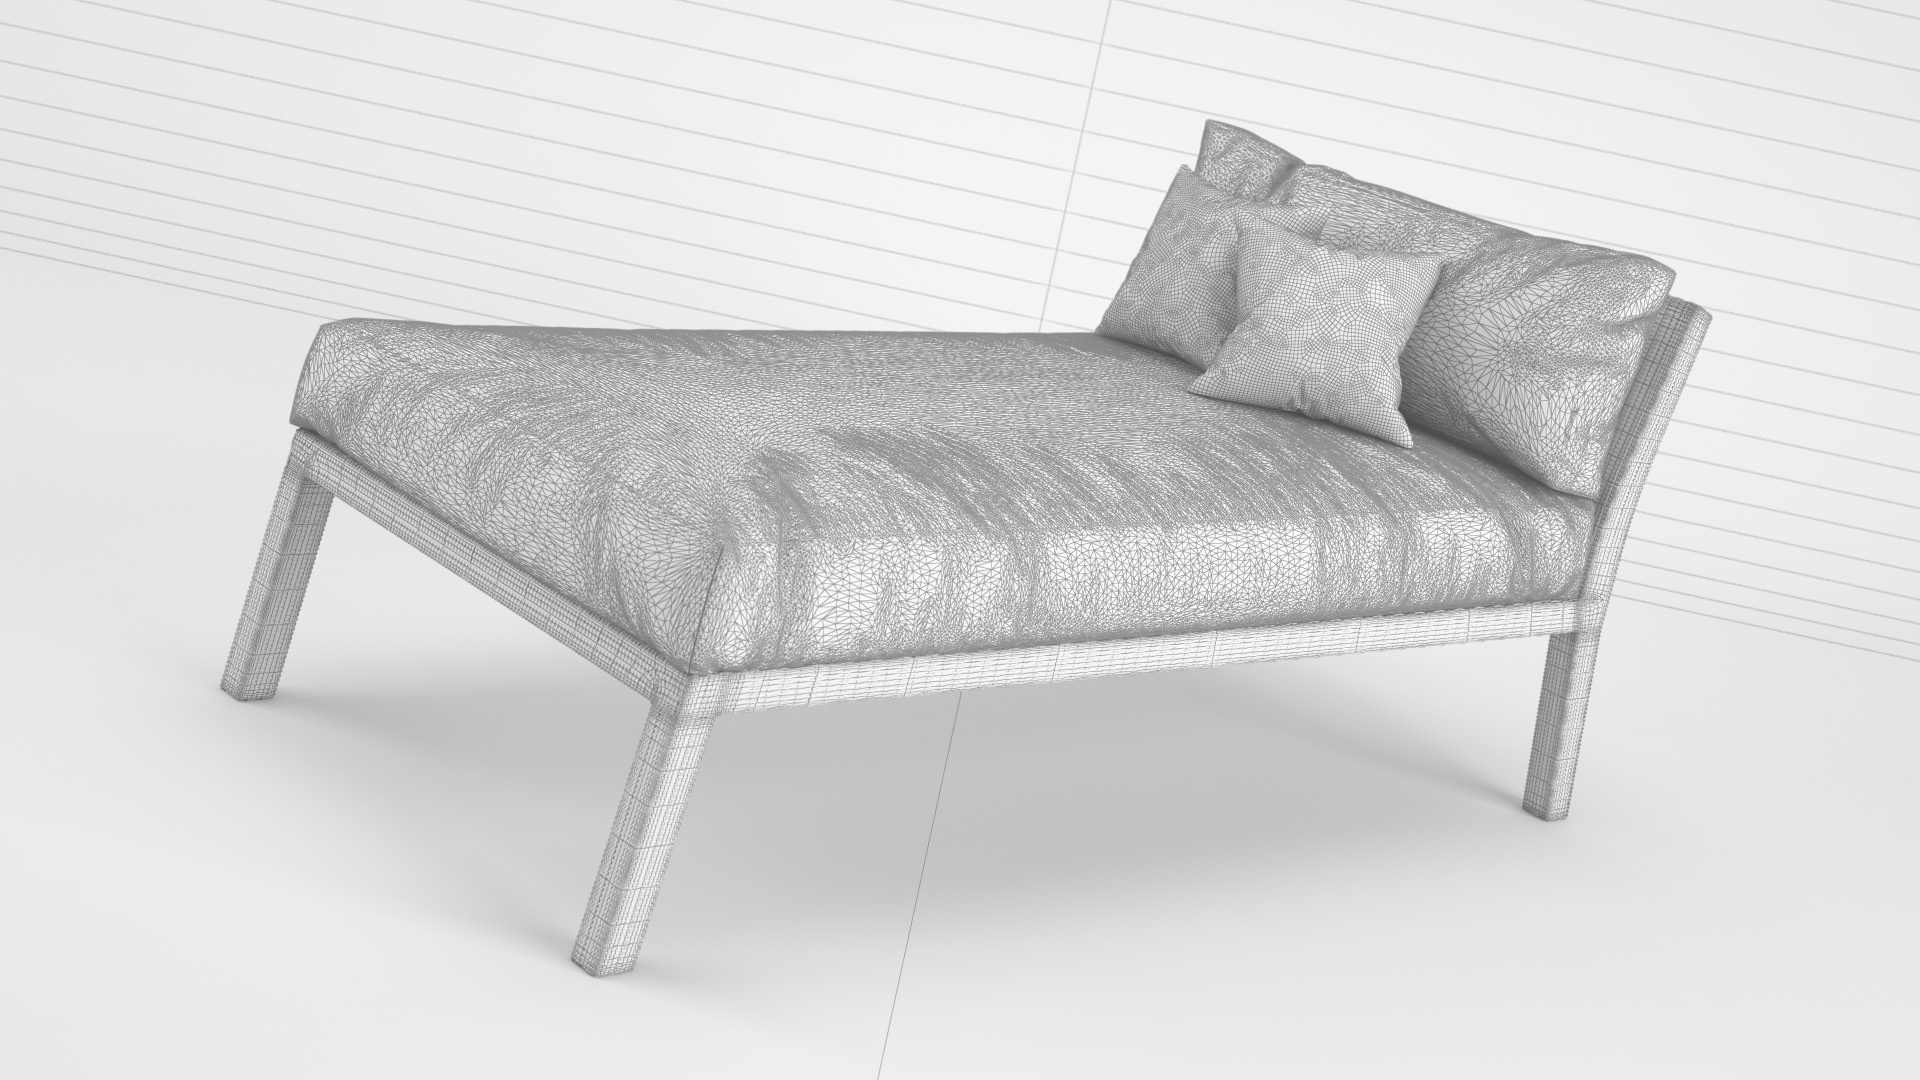 Versus_Lounger_WhiteSet_01_wire_0003